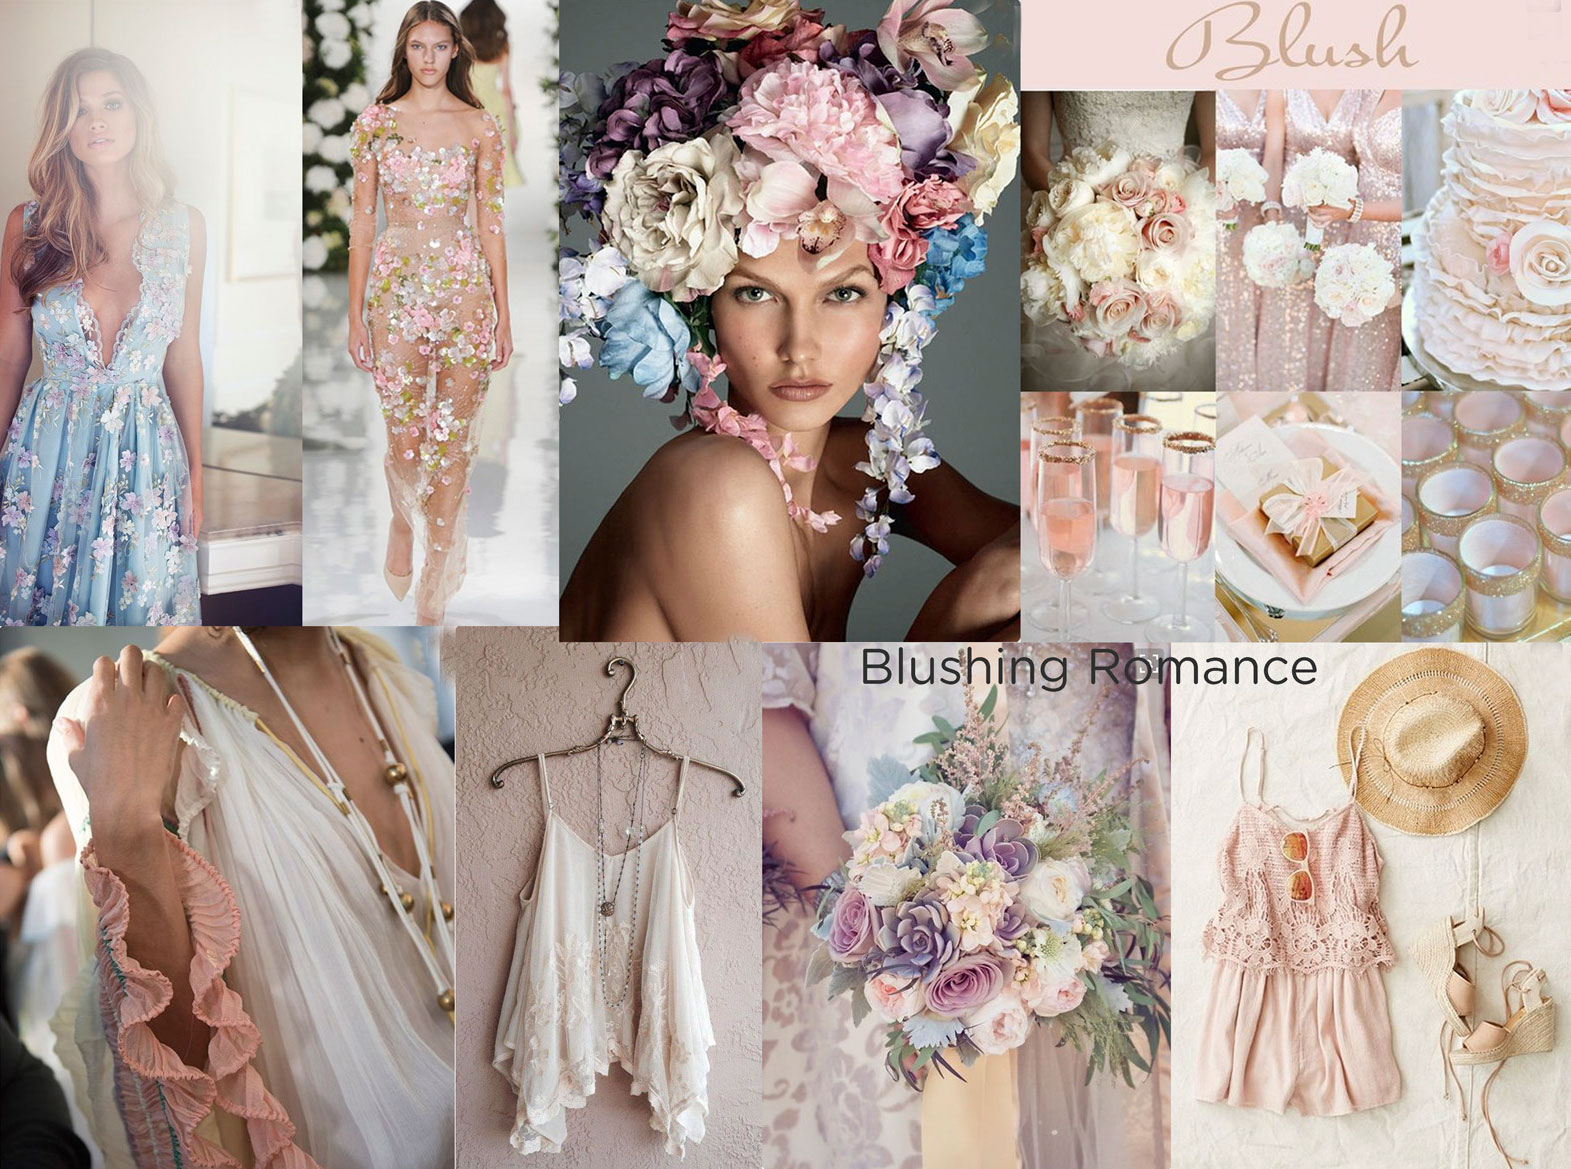 Blushing Romance - the moodboard for our Together Trend Focus